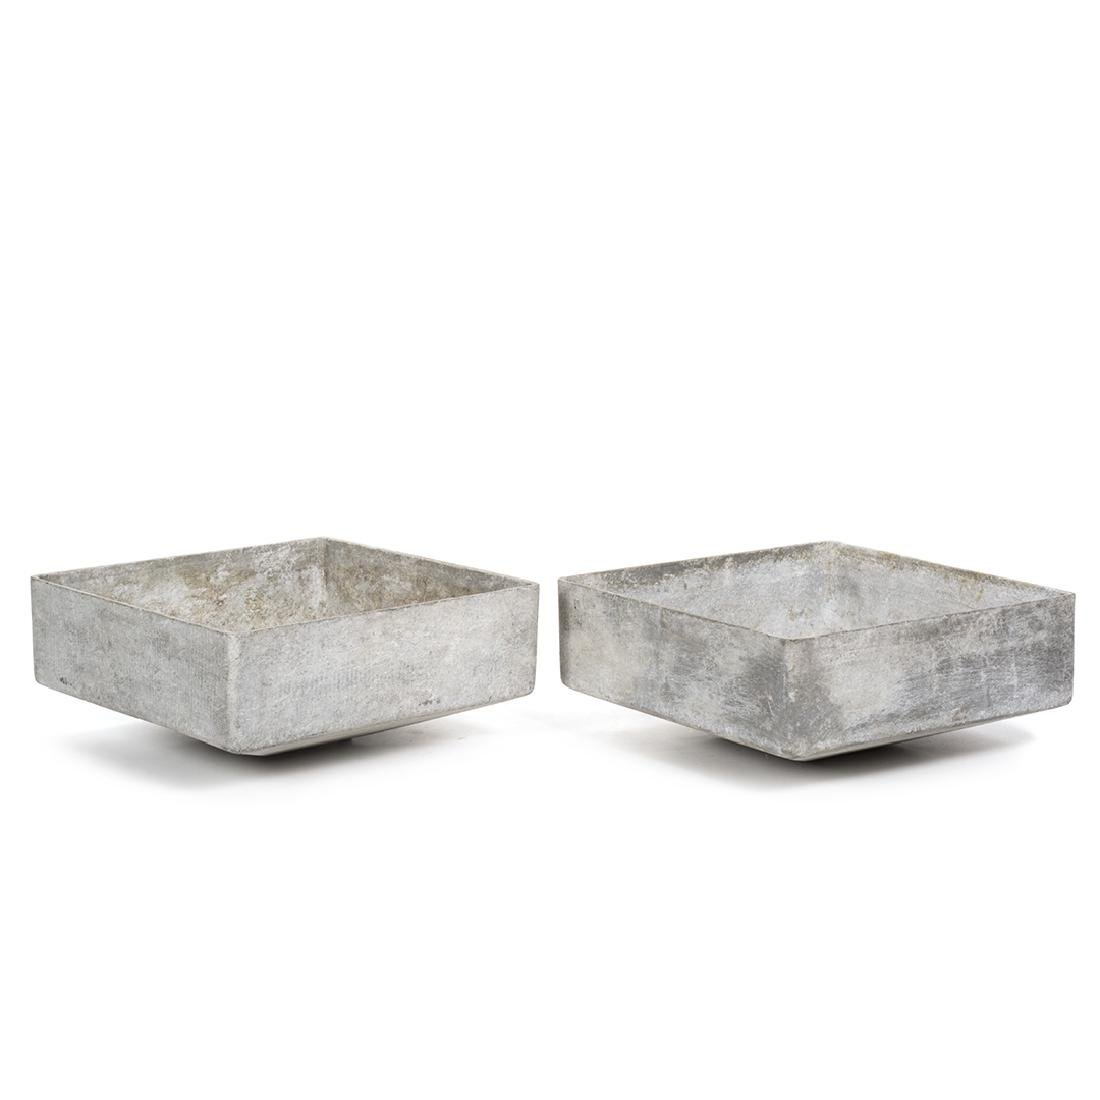 Willy Guhl Square Planters (2)